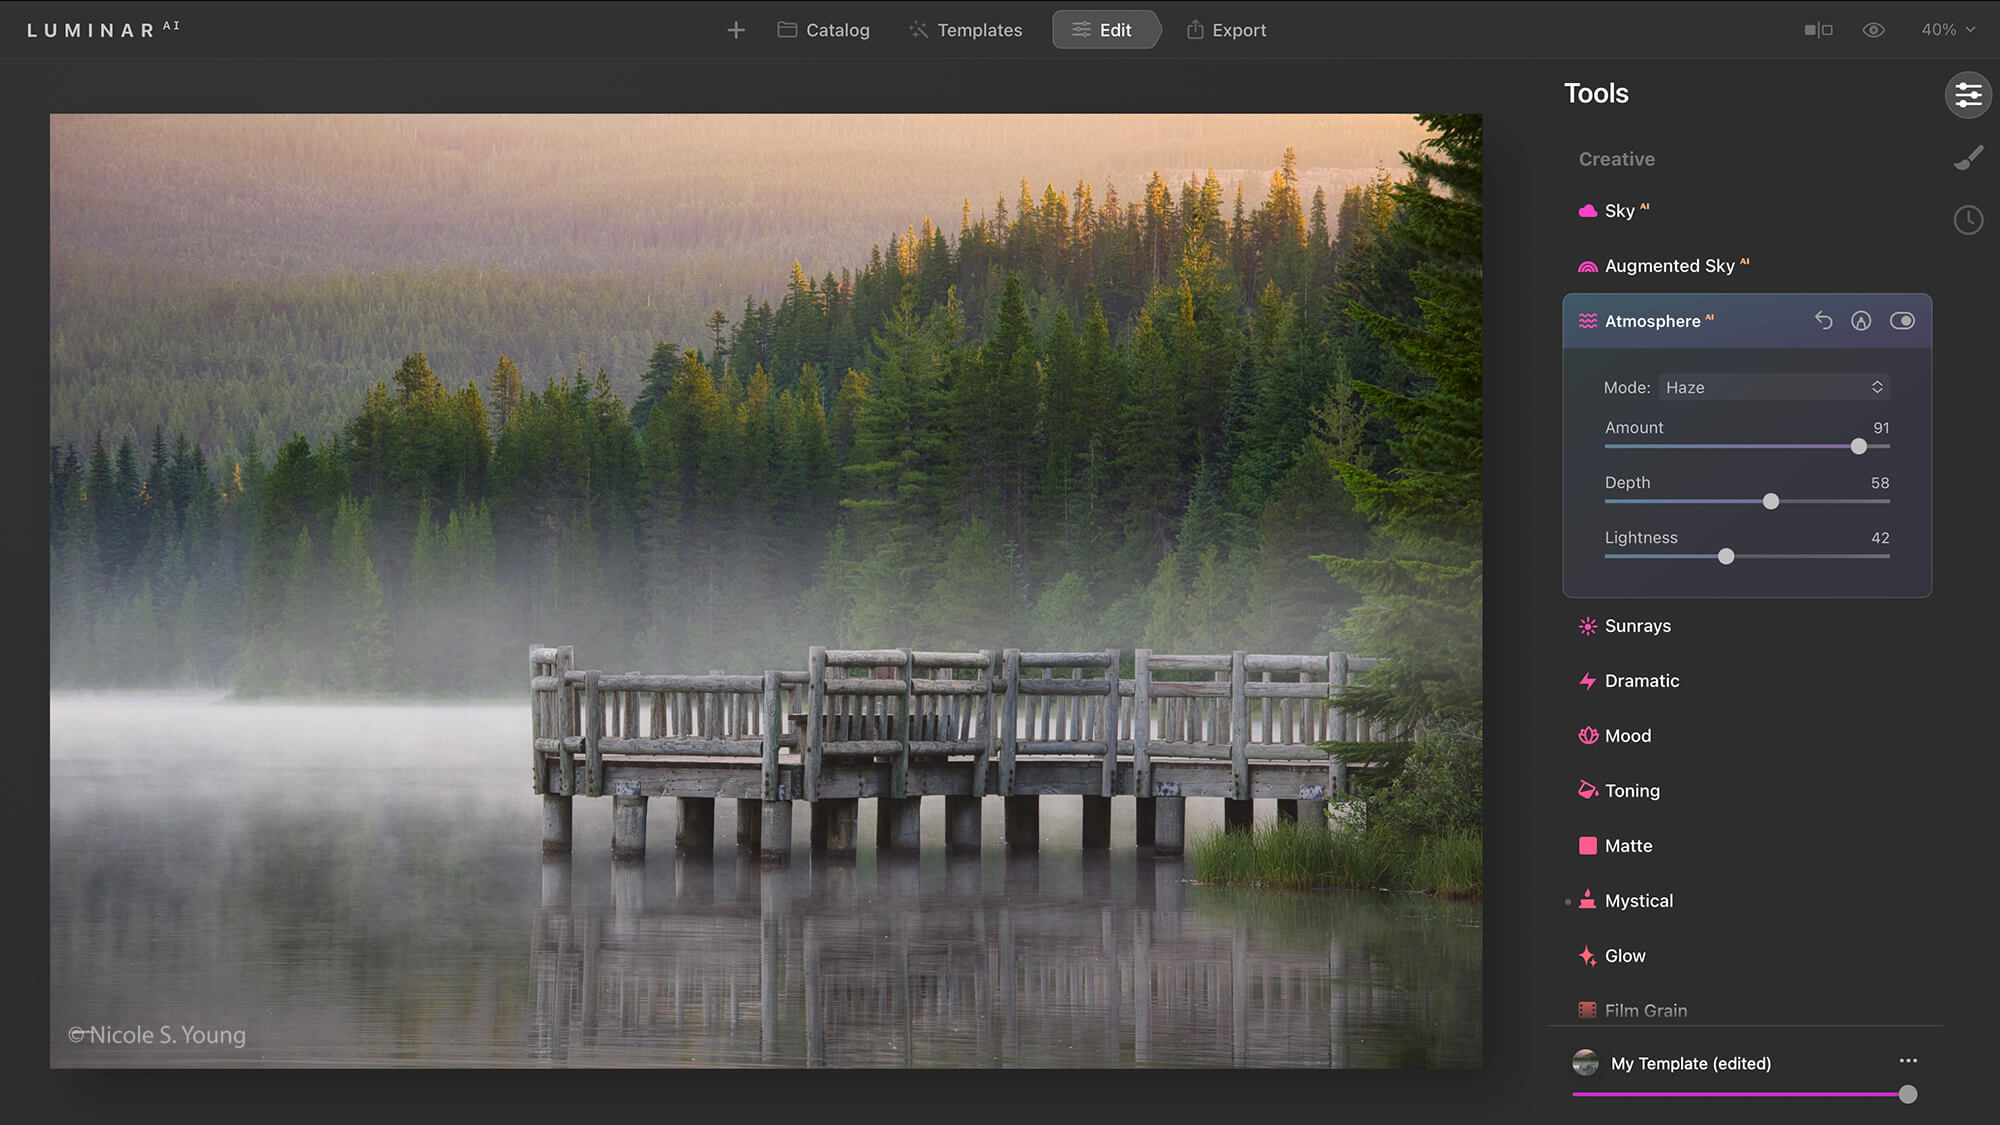 Atmosphere added for creative photo editing tips